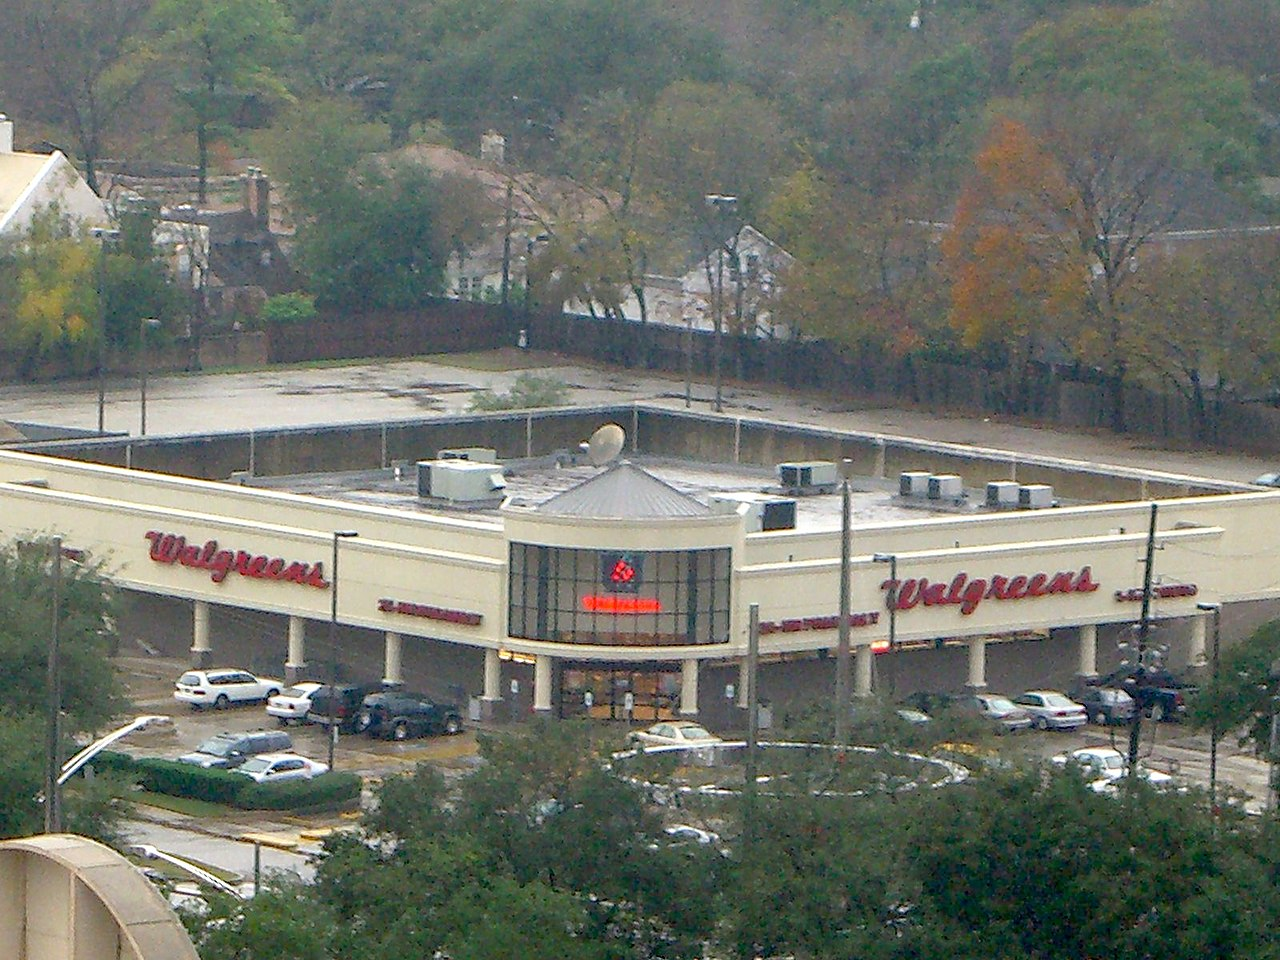 File:Walgreens CIMG8646.JPG - Wikimedia Commons